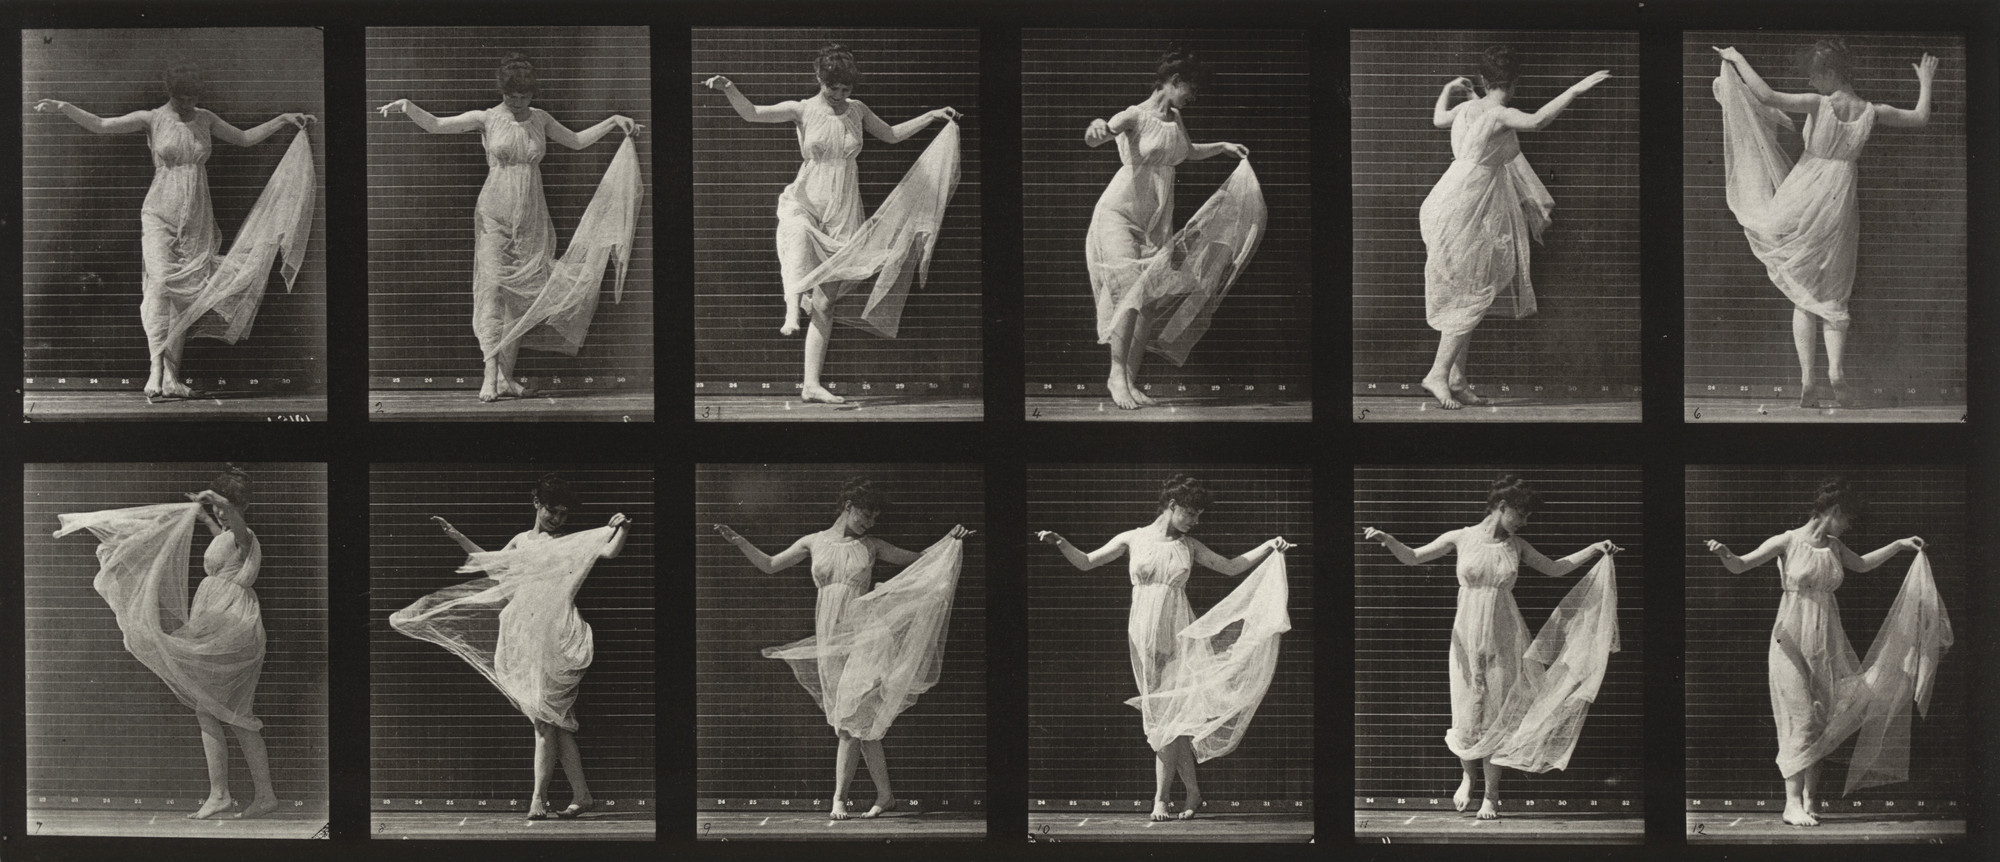 Eadweard J. Muybridge. Woman Dancing (Fancy): Plate 187 from Animal Locomotion (1887). 1884-86